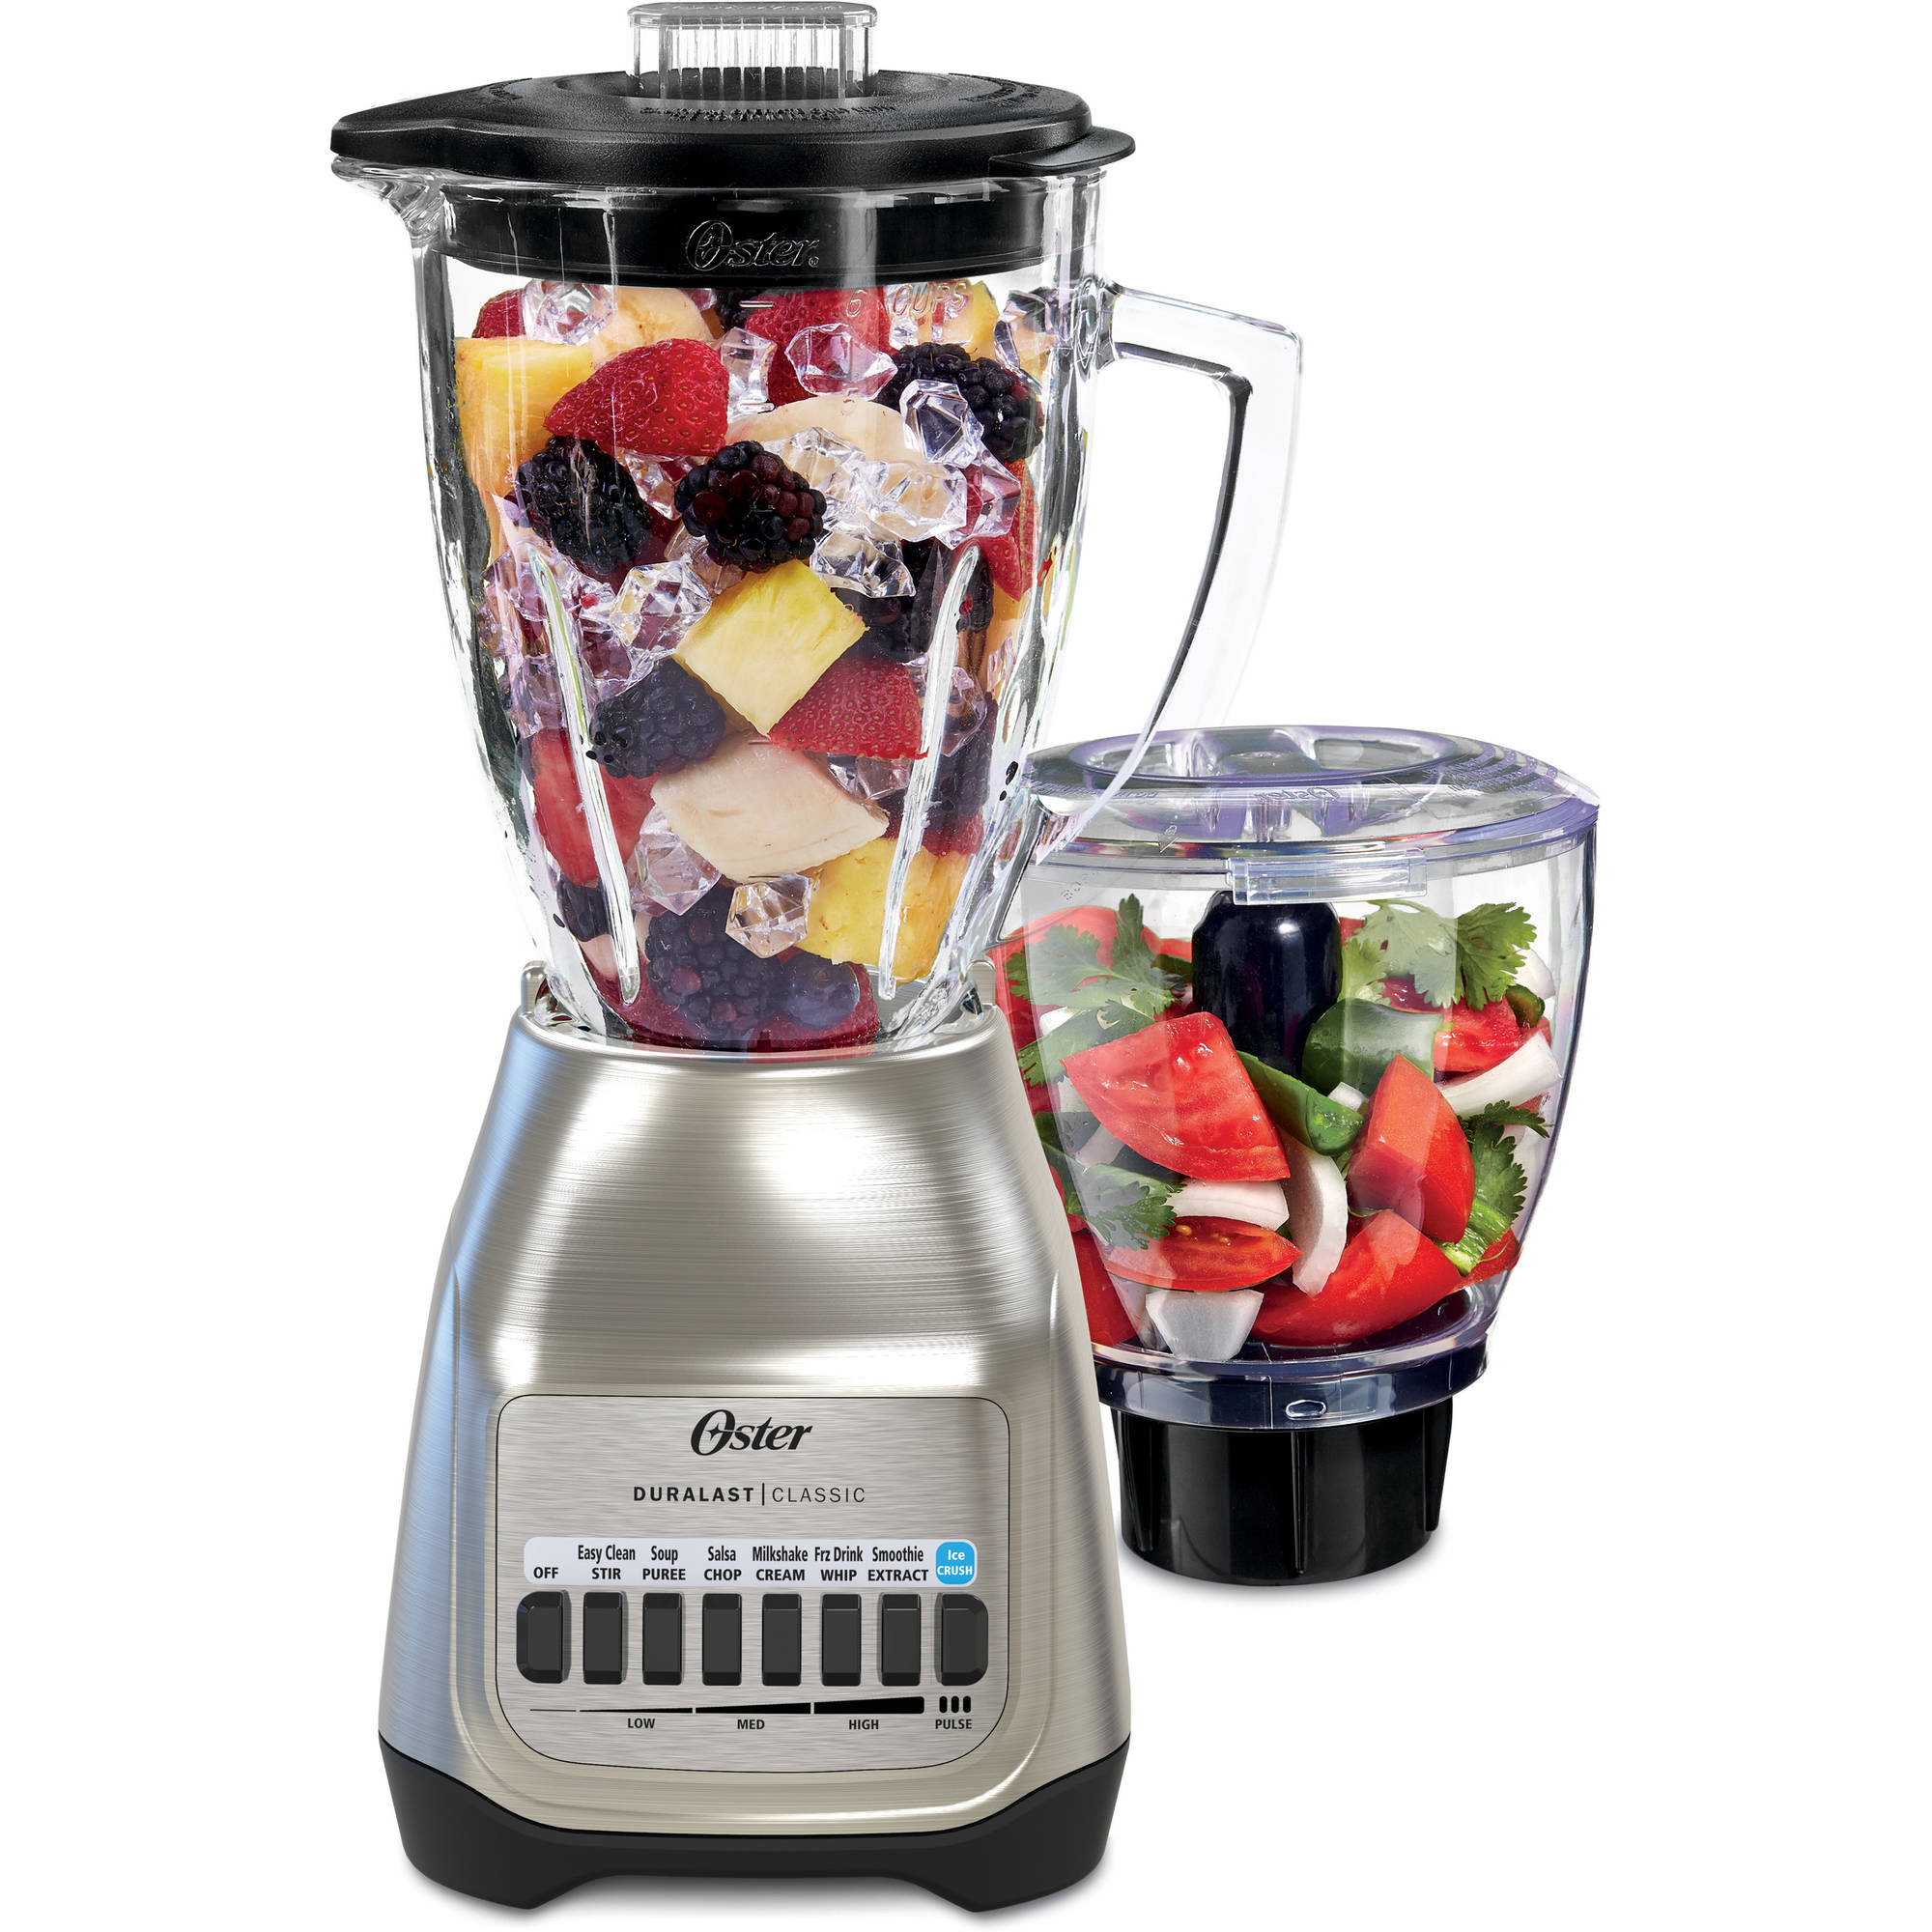 Oster 12-Speed Blender with Food Processor